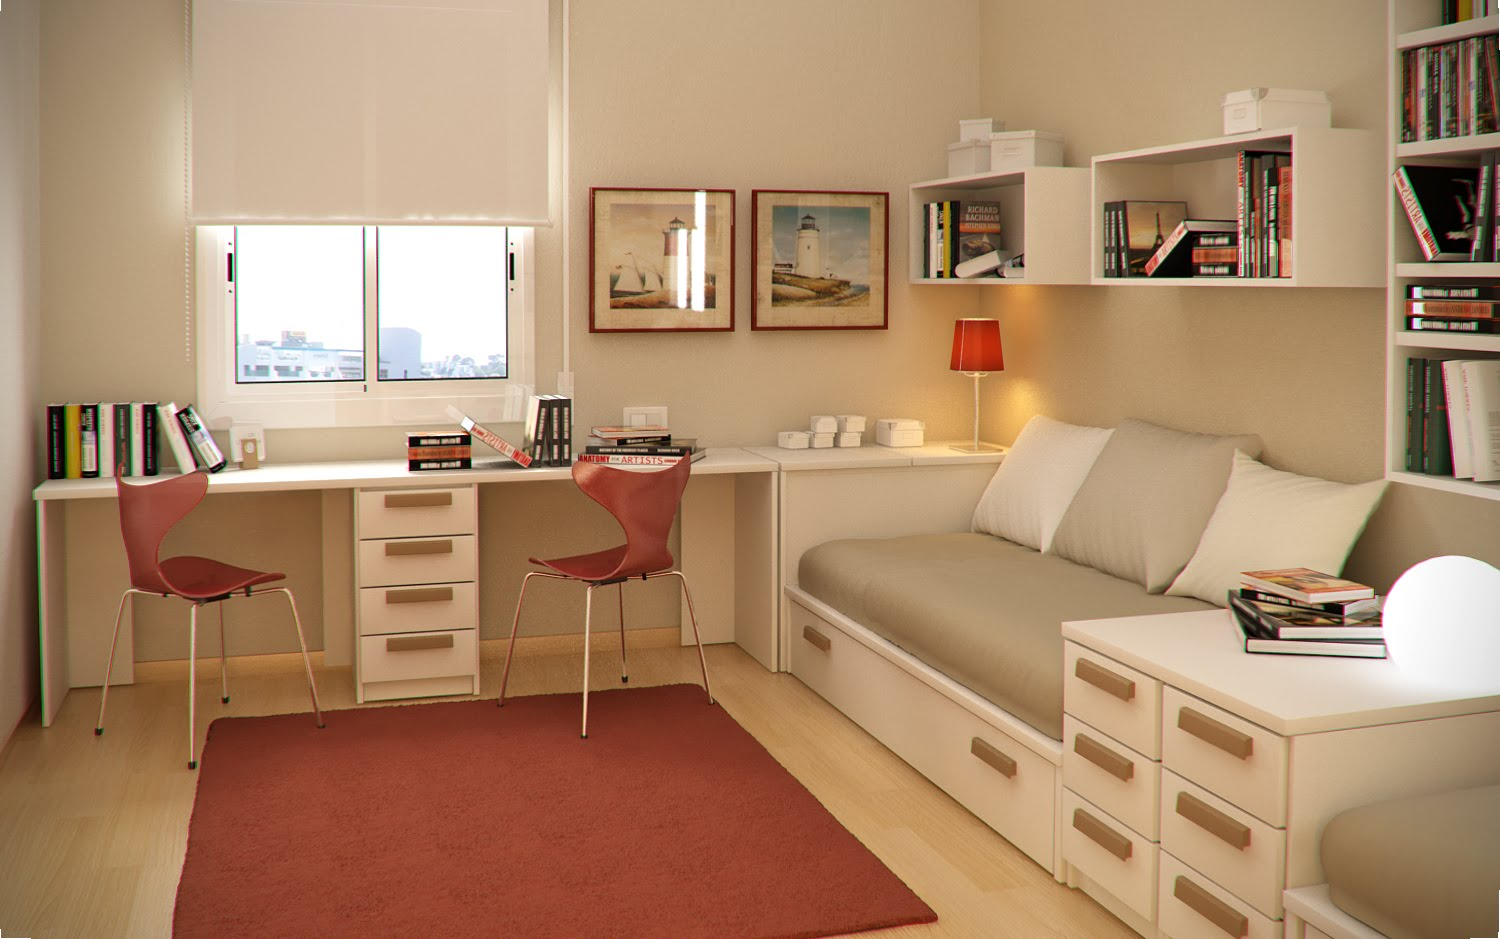 Small floorspace kids rooms - Kids room image ...